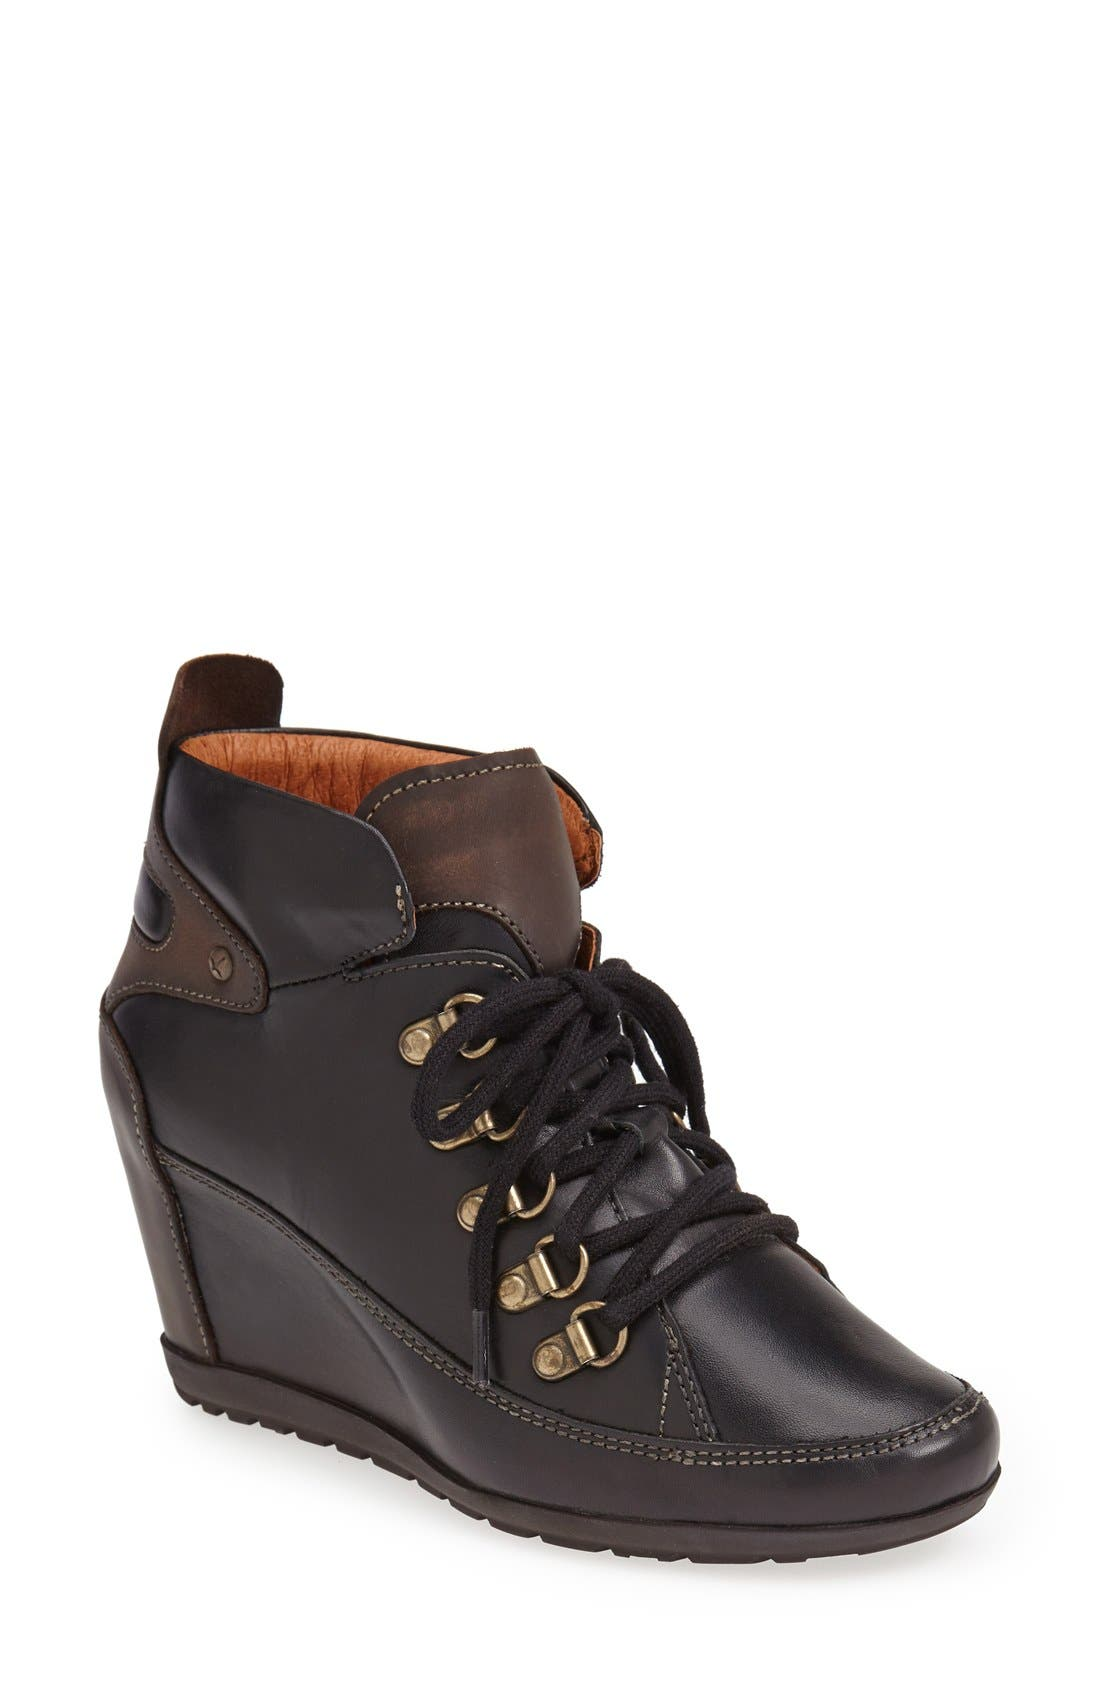 Alternate Image 1 Selected - PIKOLINOS 'Amsterdam' Wedge Bootie (Women)